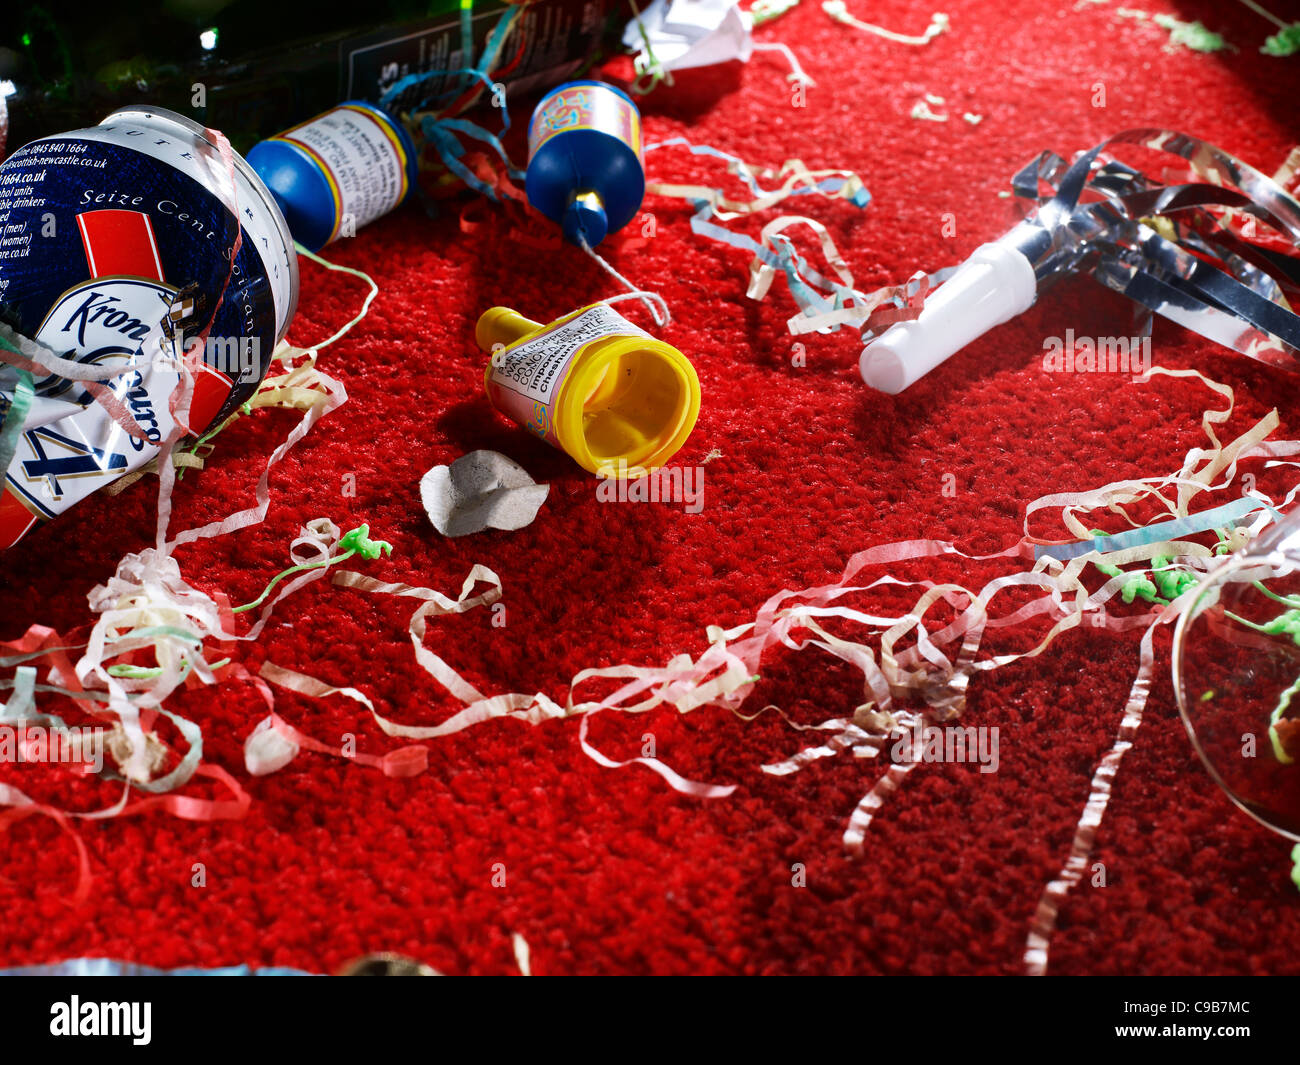 Party aftermath - Stock Image